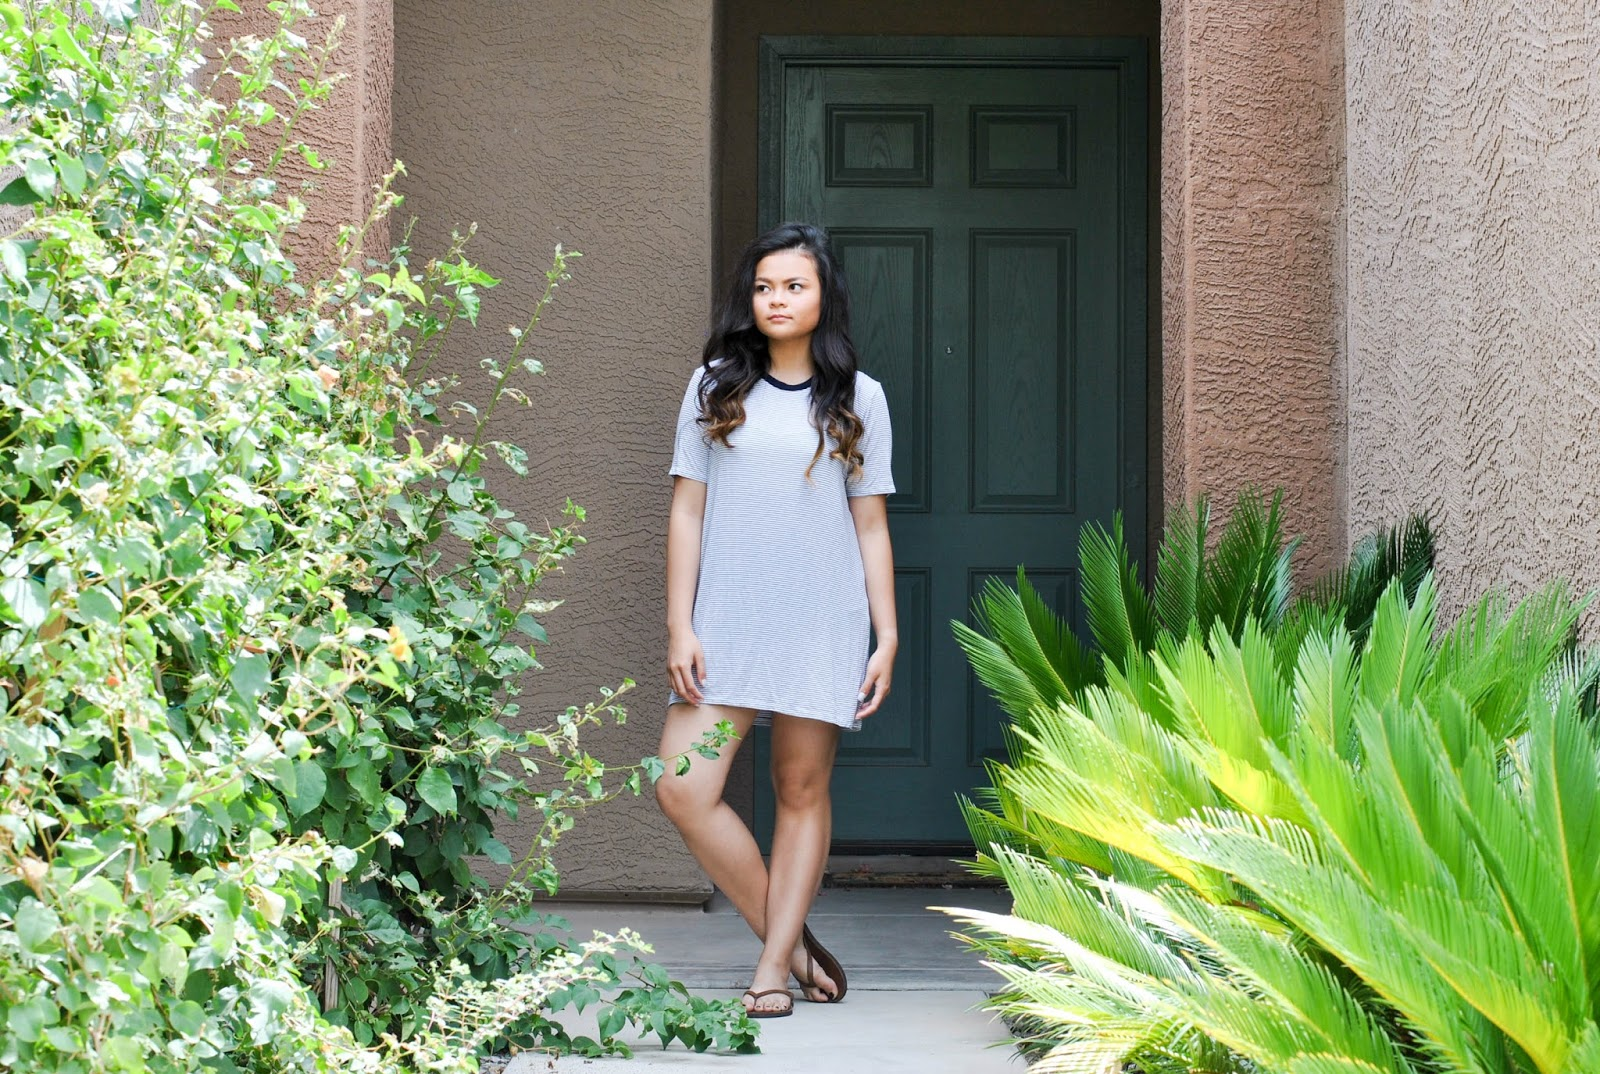 0064e9091a9e2a I recently bought a t-shirt dress from Tilly s for my fourth of july  outfit. Let me tell you one thing I instantly fell in love with t-shirt  dresses.